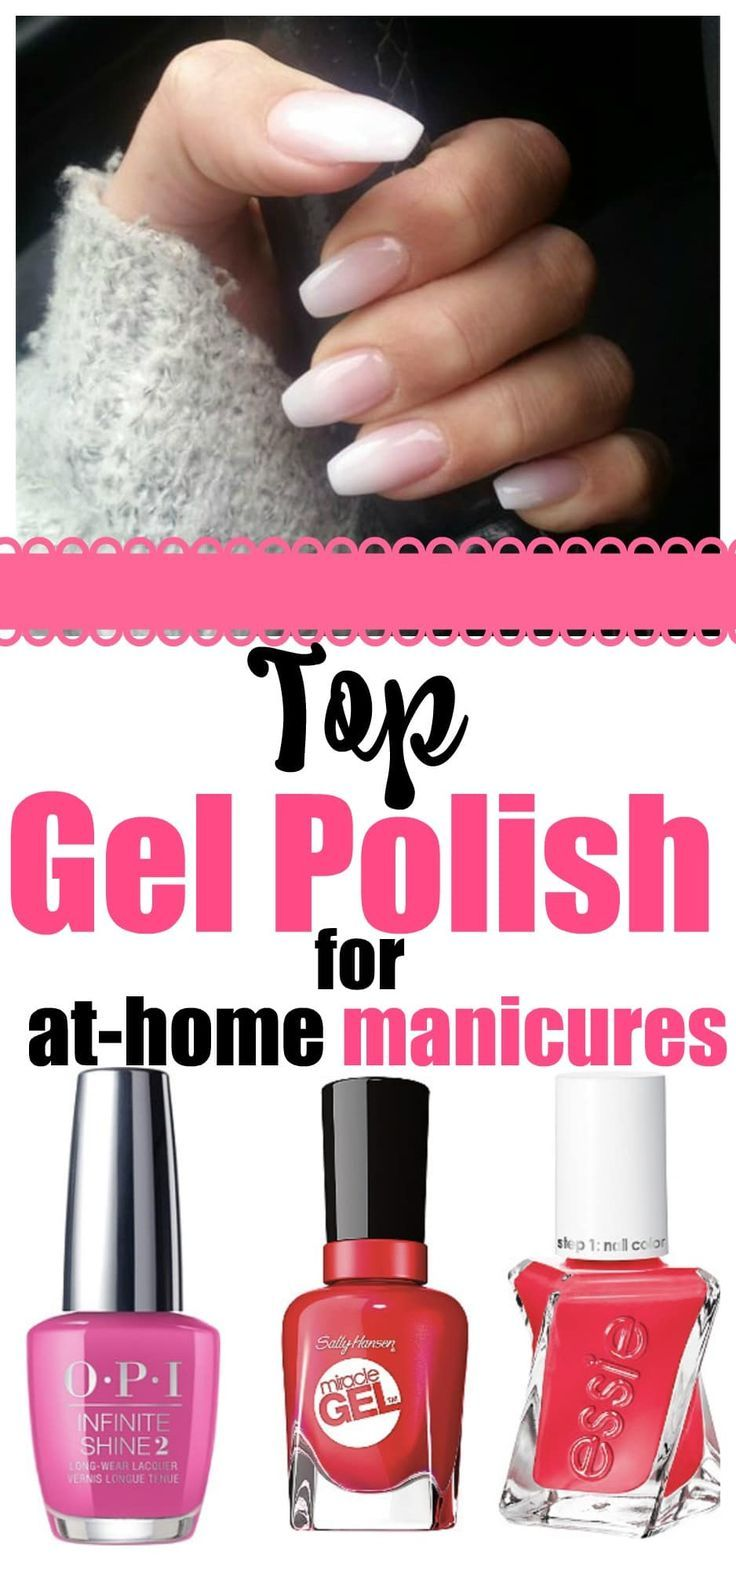 Top Gel Polish For At Home Manicures Best Picks Gel Nail Polish Brands Gel Manicure At Home Gel Manicure